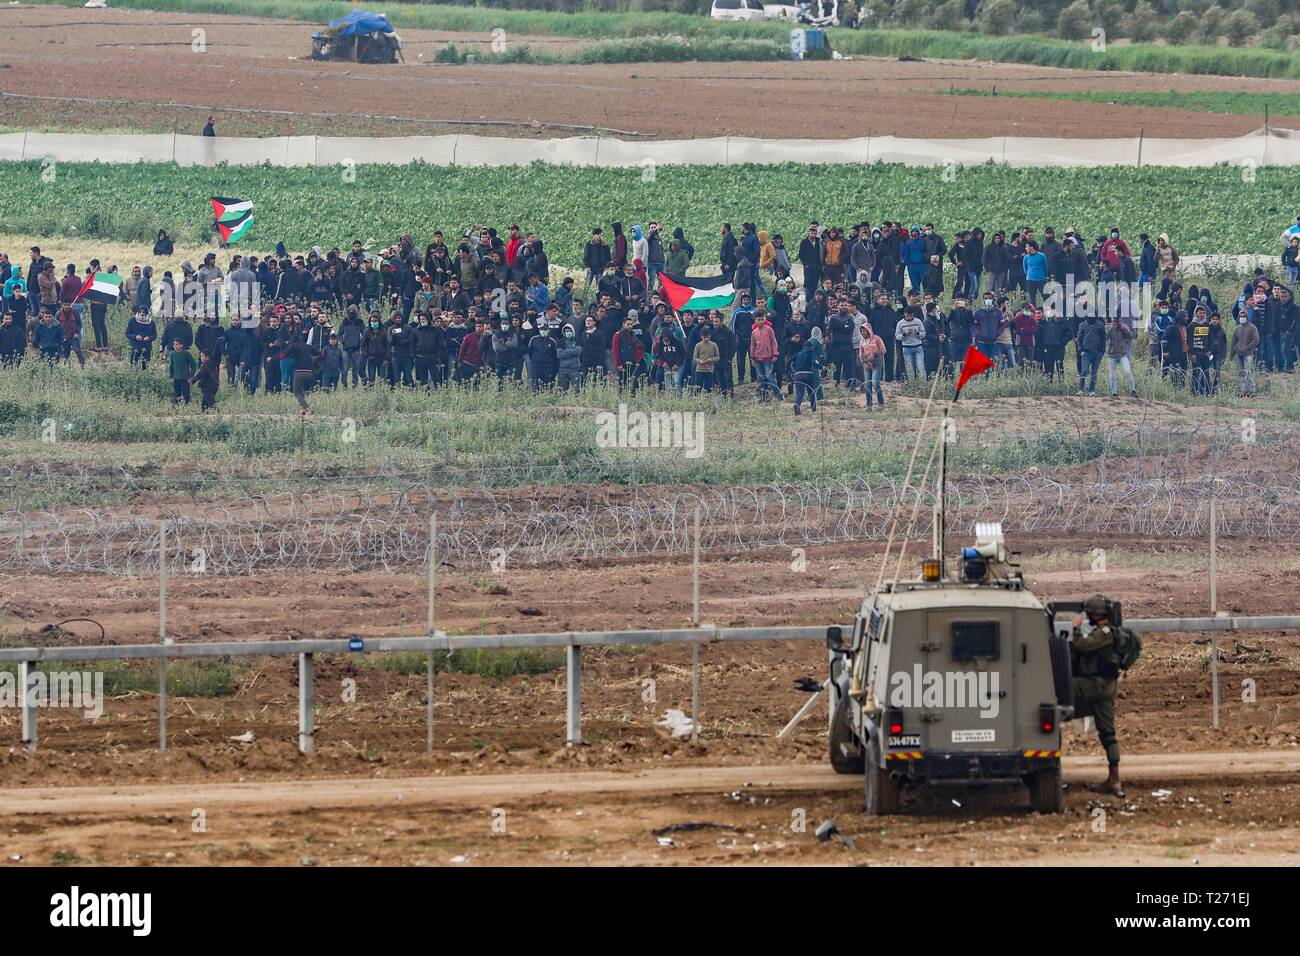 Nahal Oz. 30th Mar, 2019. Palestinian protesters from Gaza strip clash with Israeli soldiers at the security fence next to Nahal Oz, on March 30, 2019, as Palestinian demonstrators mark the first anniversary of the 'Great March of Return' and the Palestinian 'Land Day'. Credit: JINI/Xinhua/Alamy Live News - Stock Image